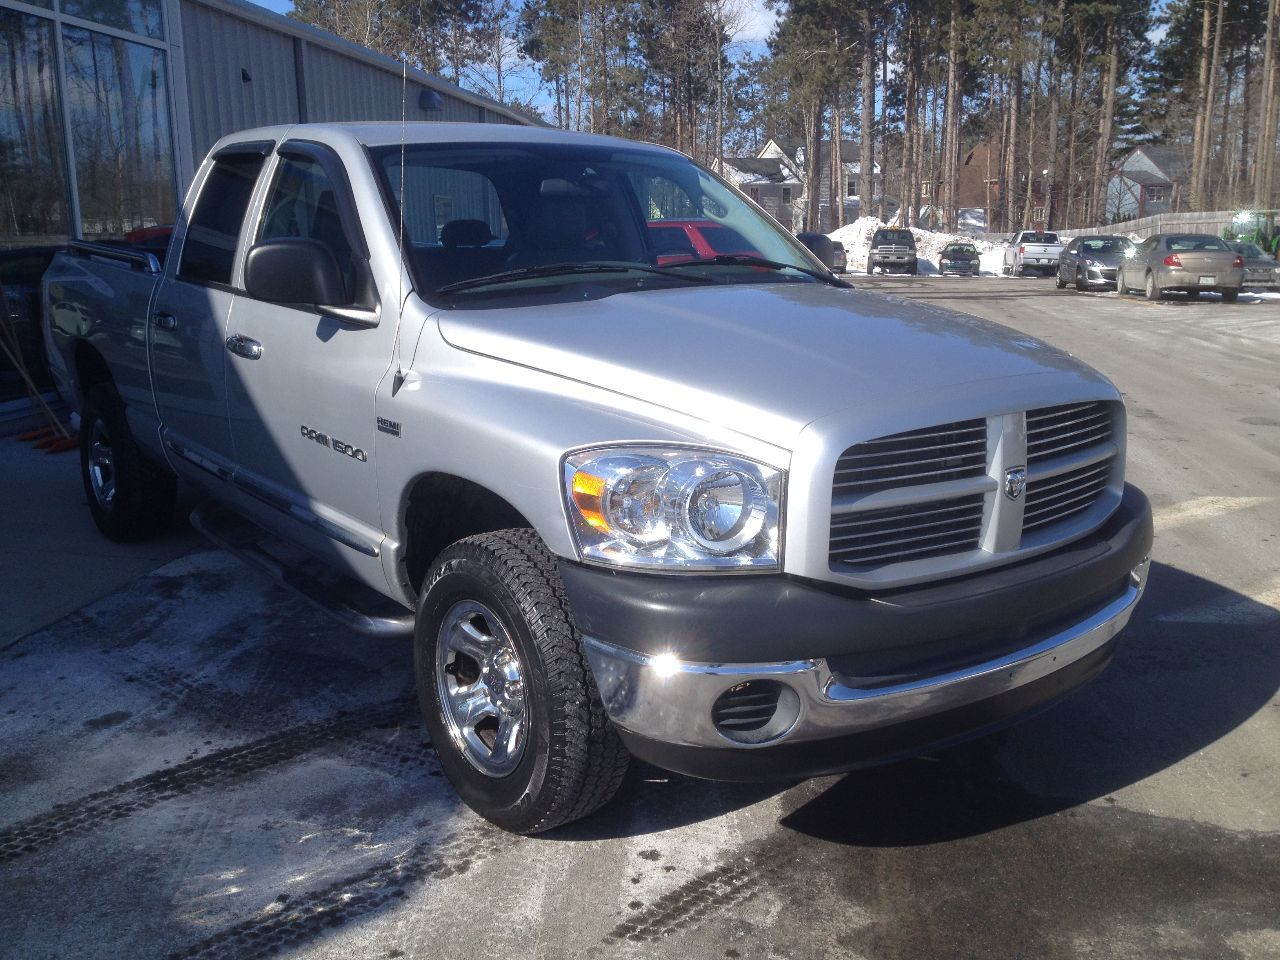 used 2007 dodge ram 1500 st in new germany used inventory lake view auto in new germany. Black Bedroom Furniture Sets. Home Design Ideas